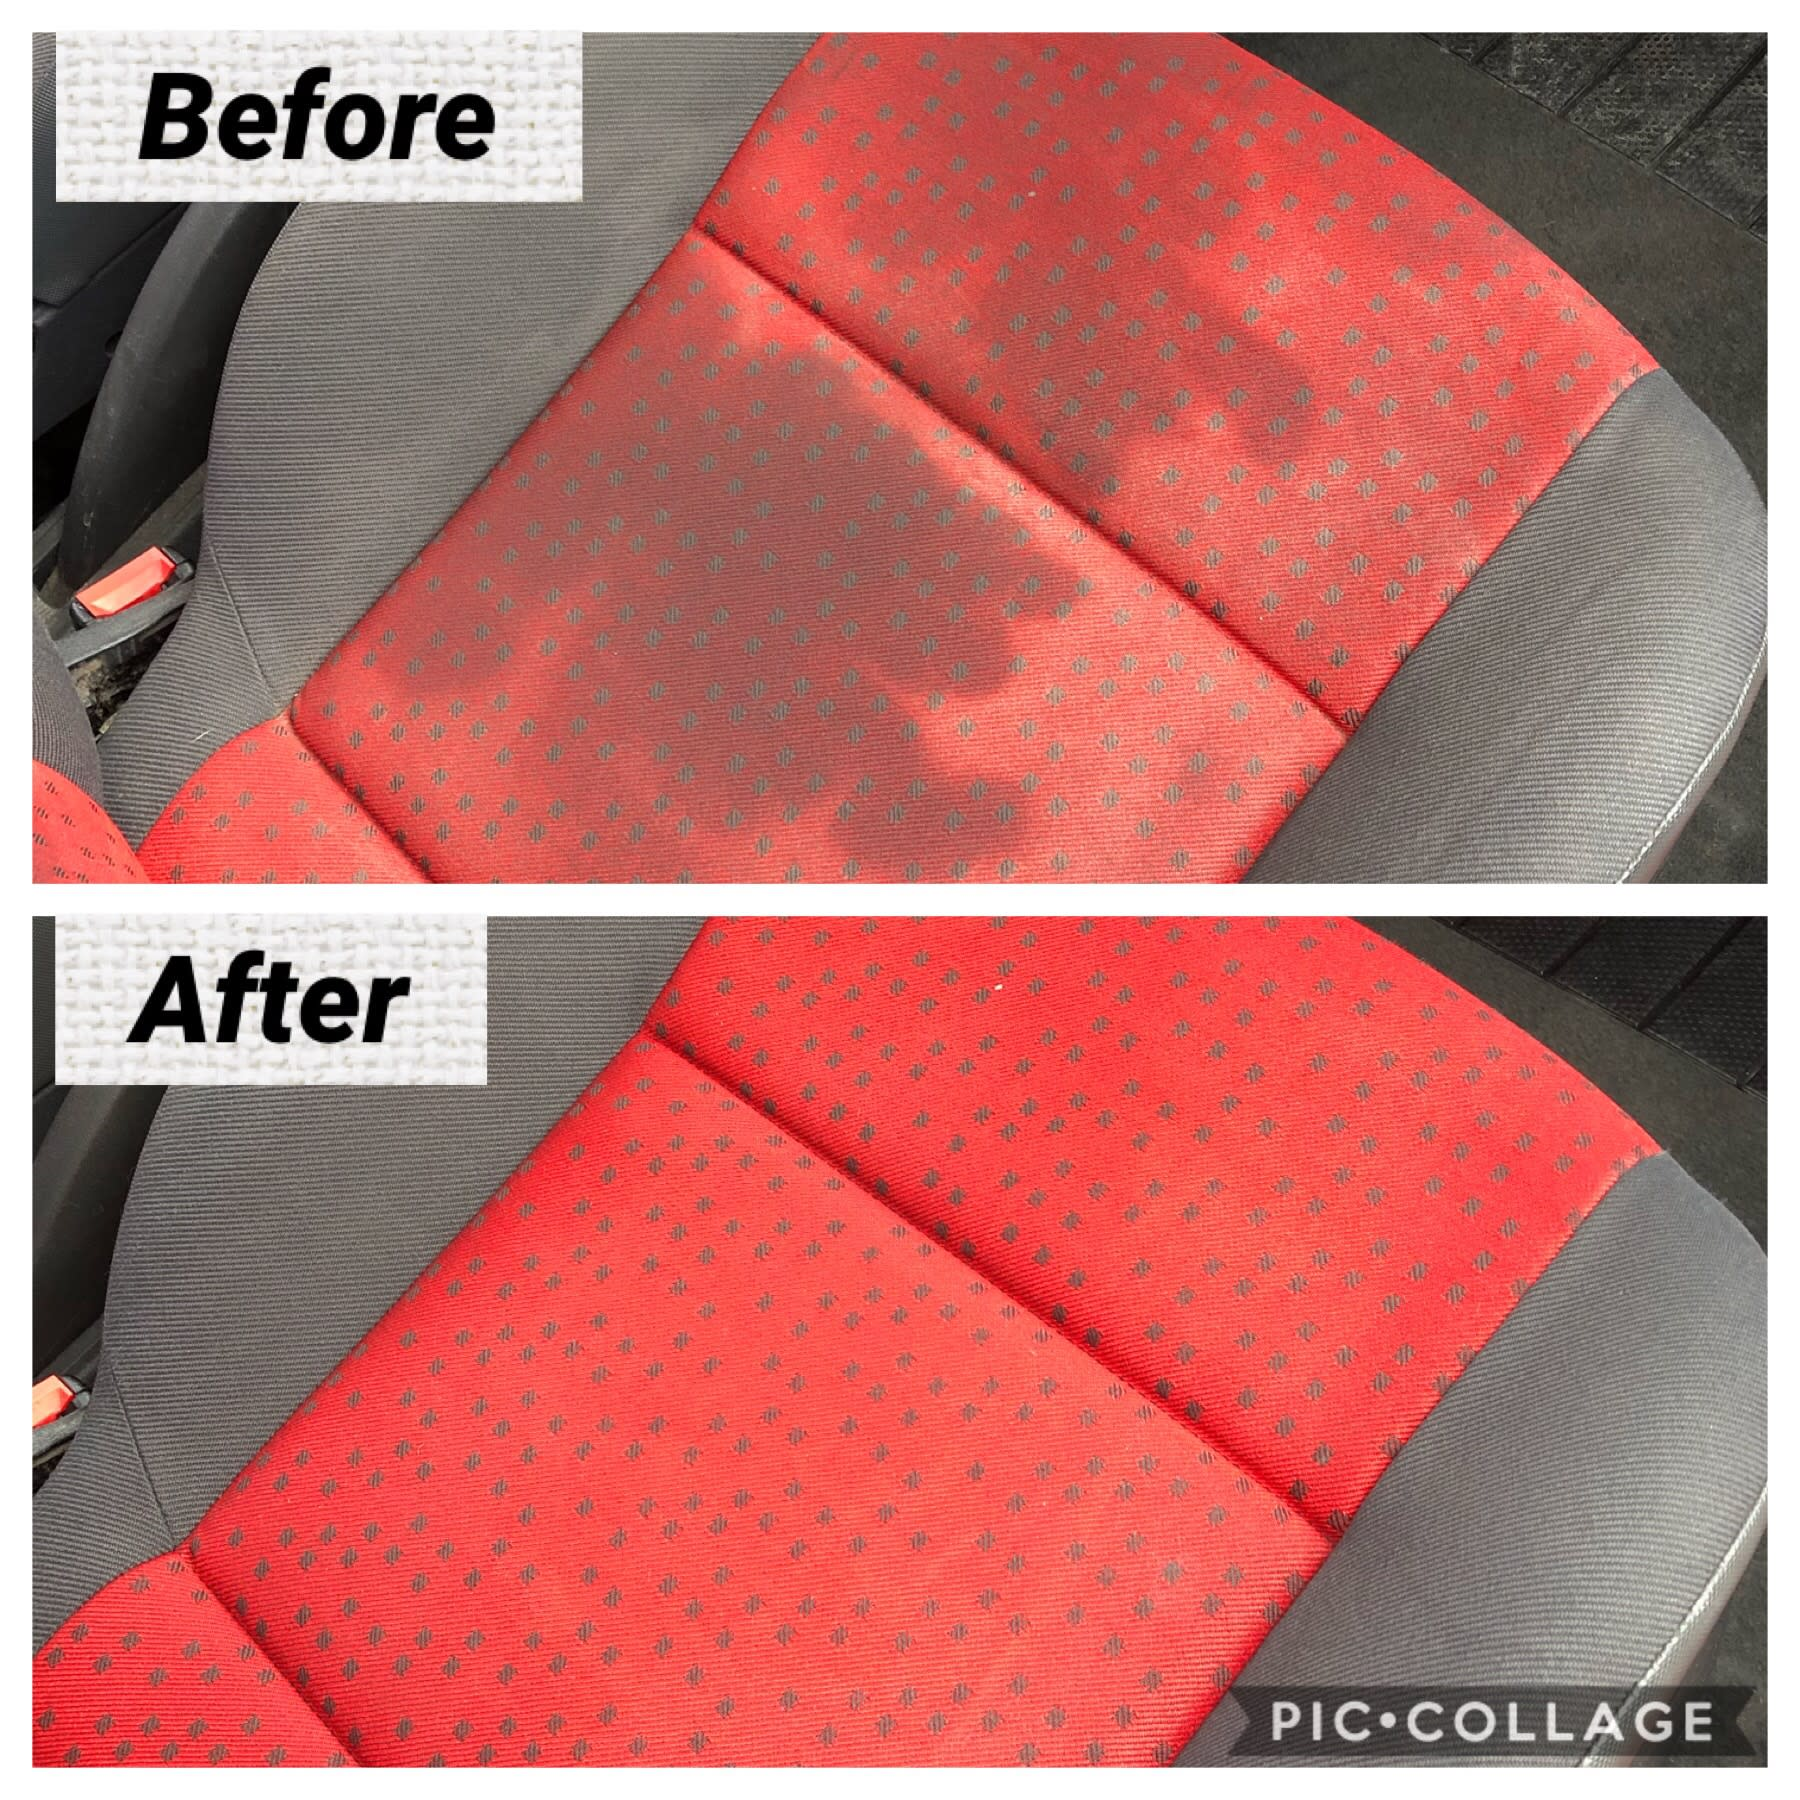 SQ Clean Mobile Valeting Normanton 07507 019212